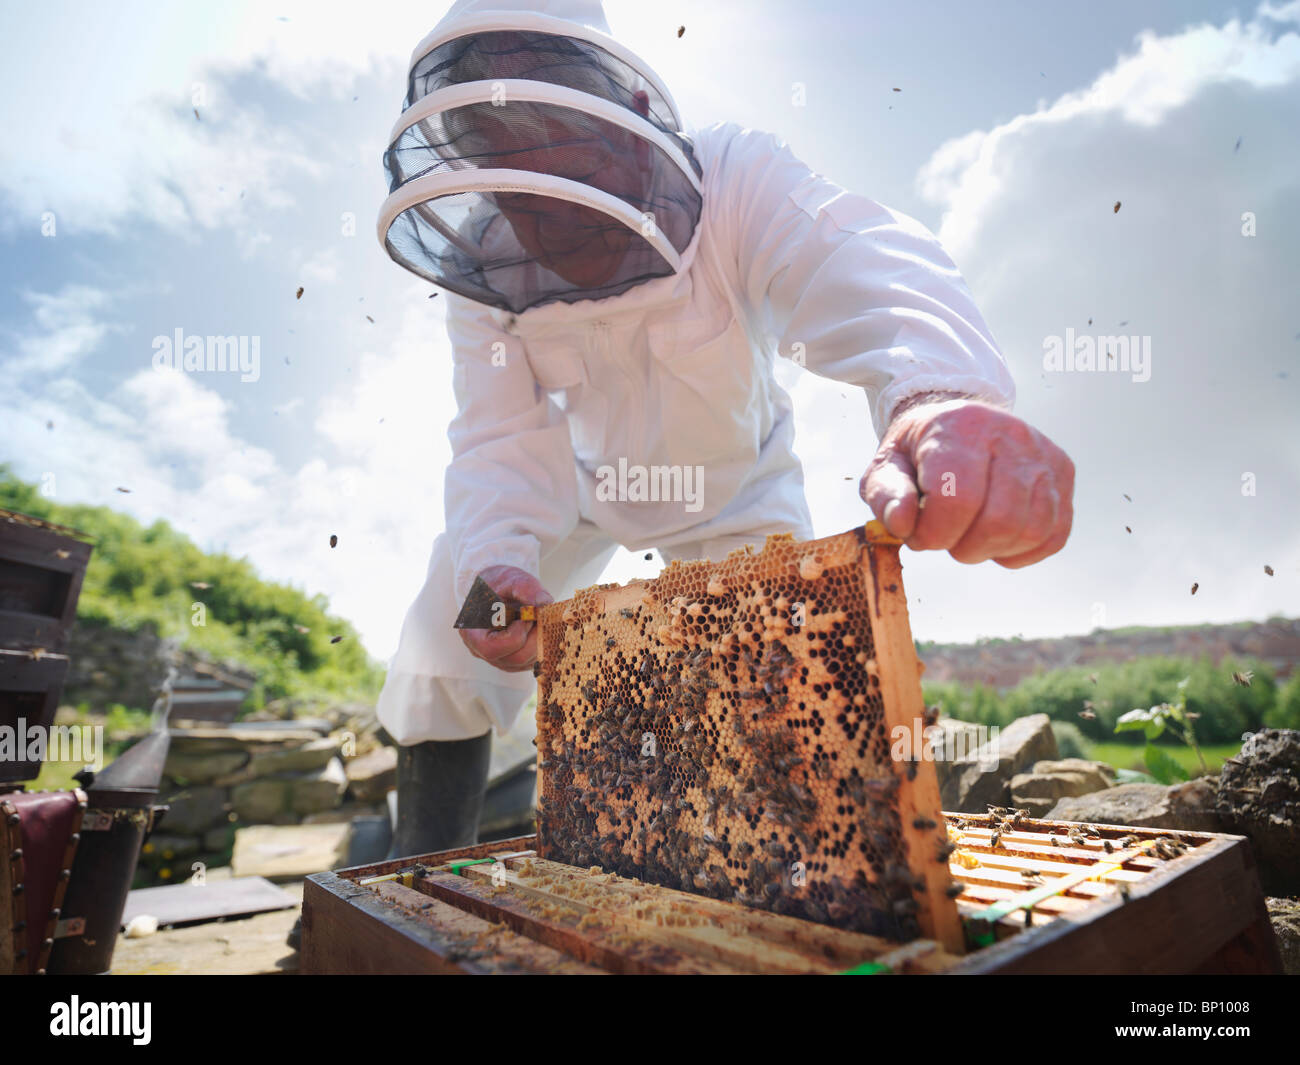 Beekeeper inspects bee hive - Stock Image